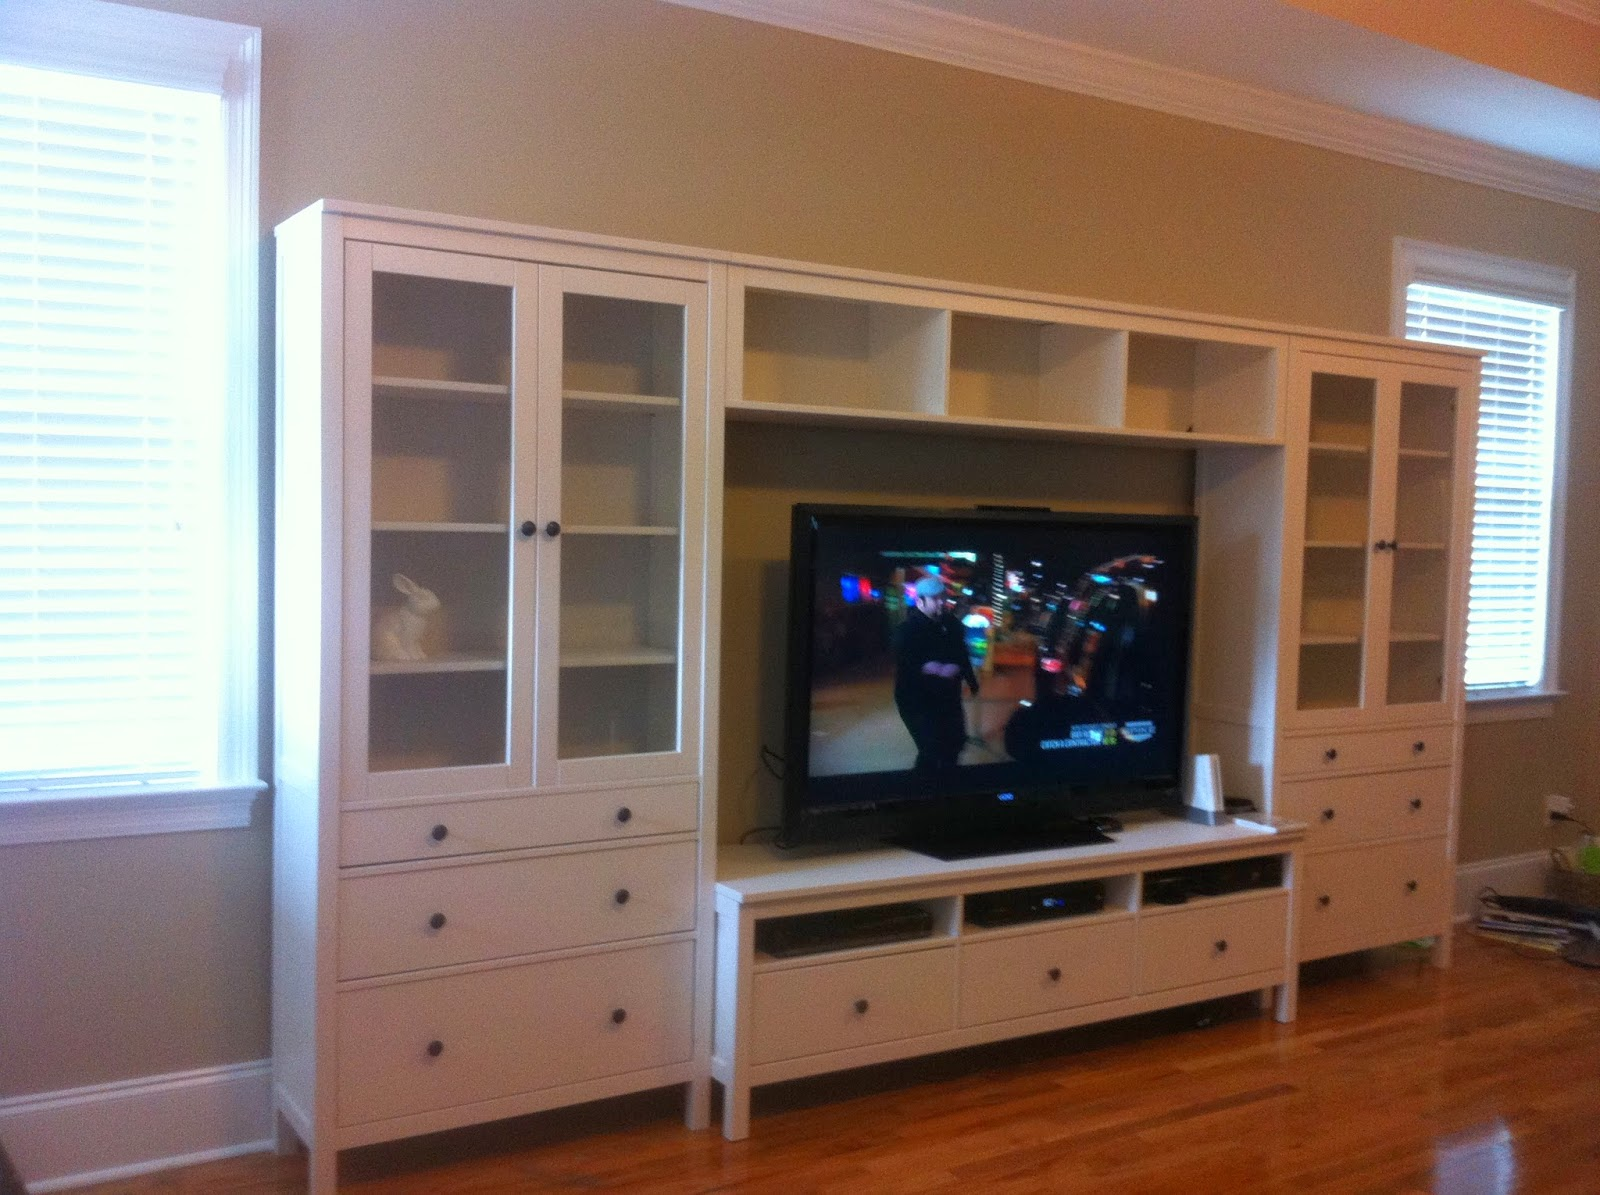 wife on a budget entertainment center upgrade. Black Bedroom Furniture Sets. Home Design Ideas